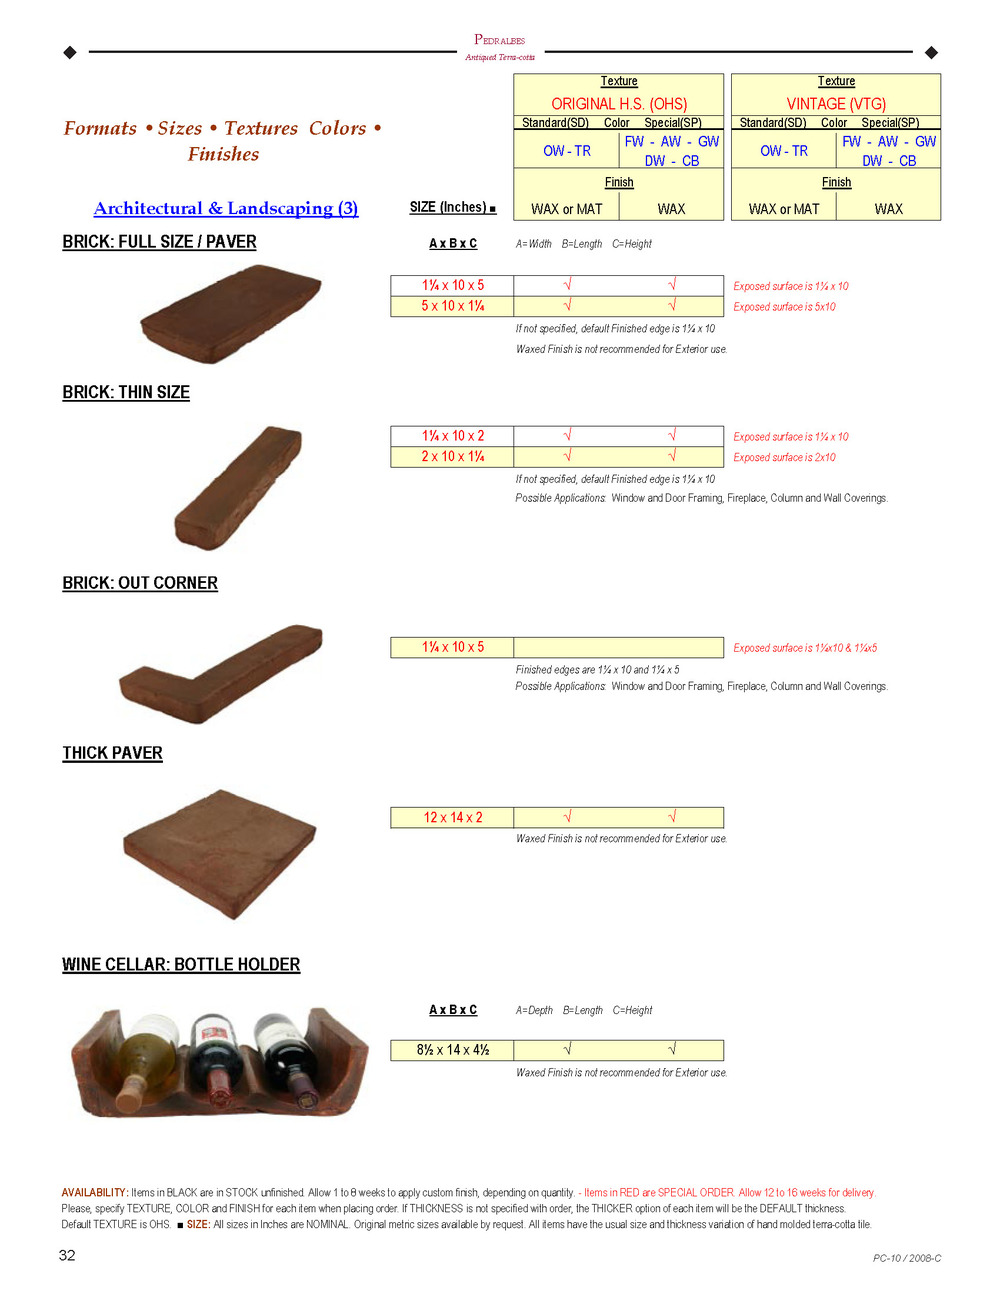 03-Formats+Sizes_Page_16.jpg